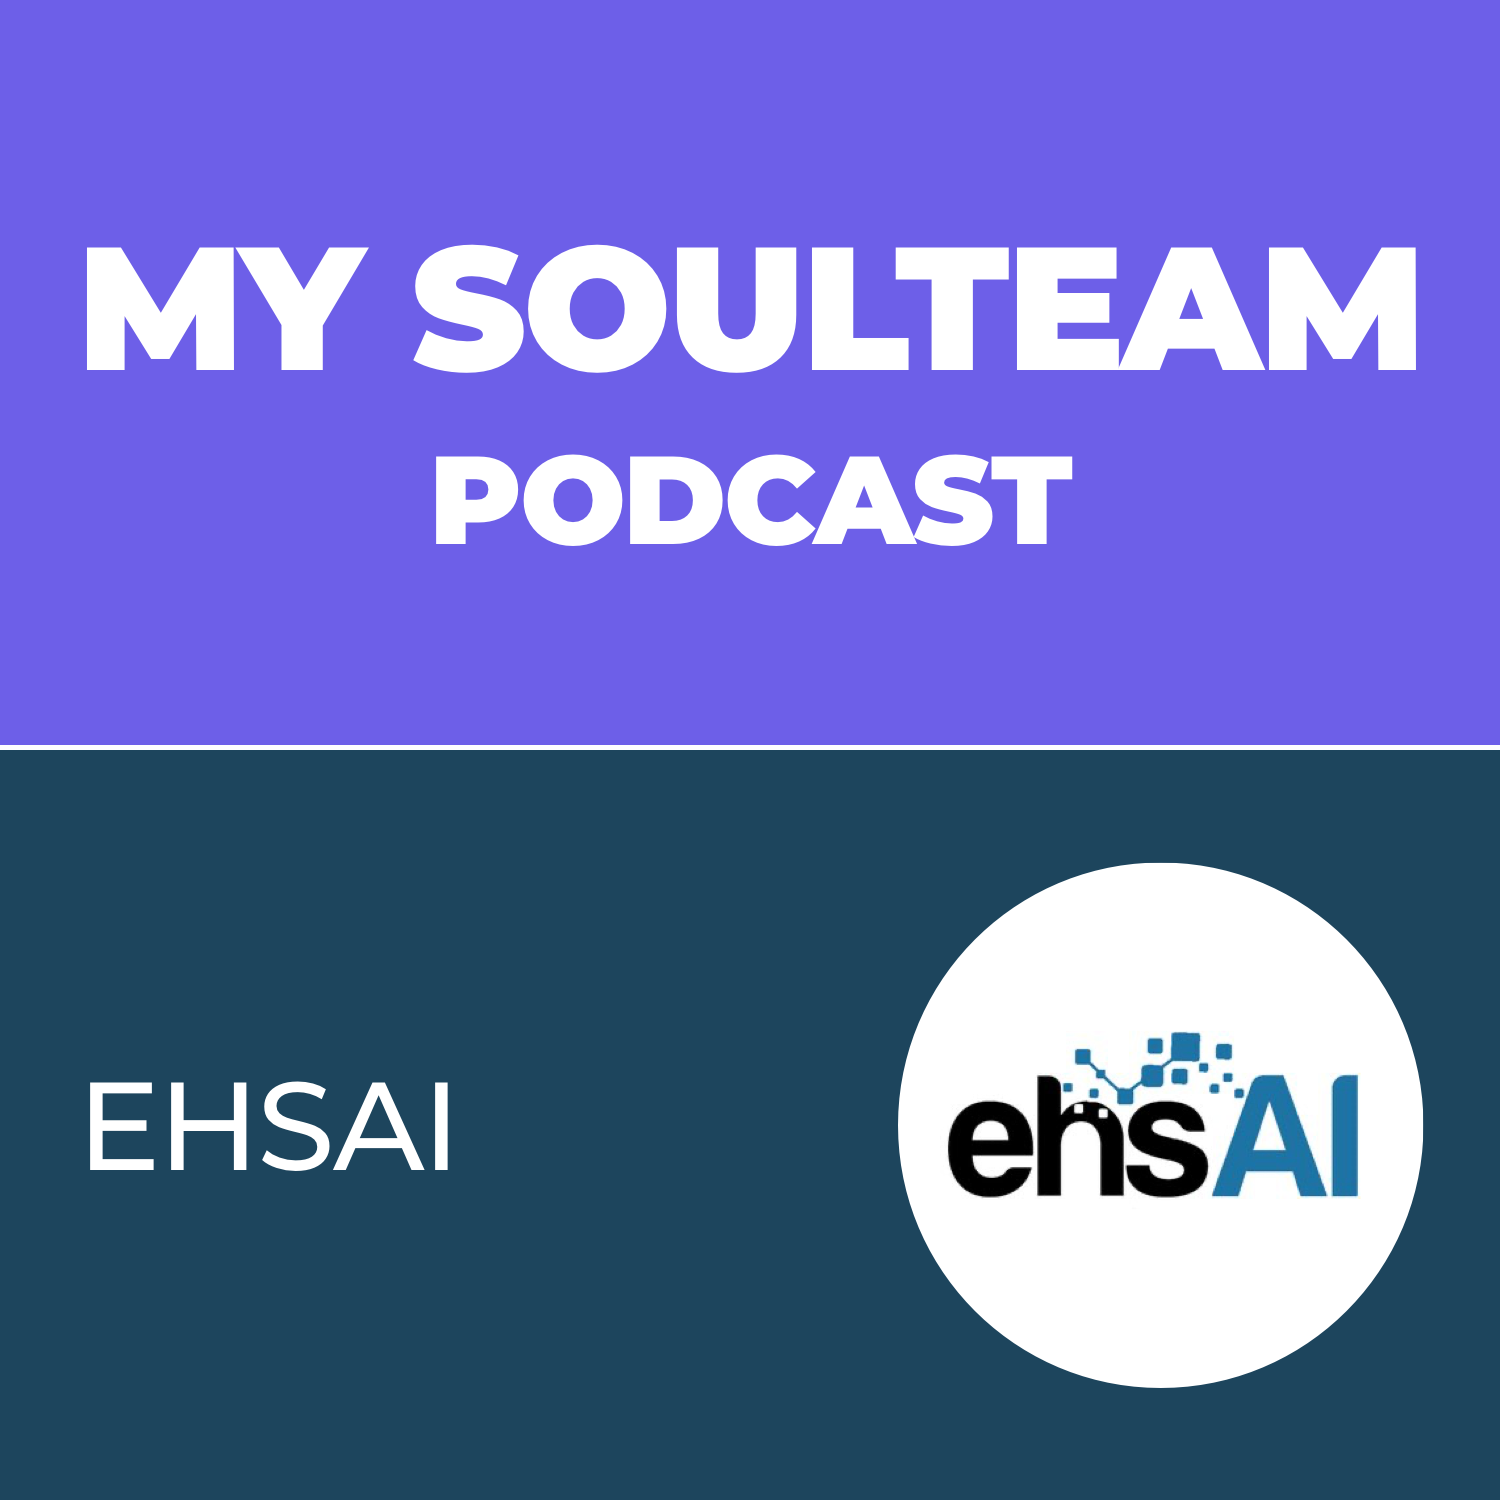 My SoulTeam Podcast - Episode 3 - ehsAI, Margery Moore